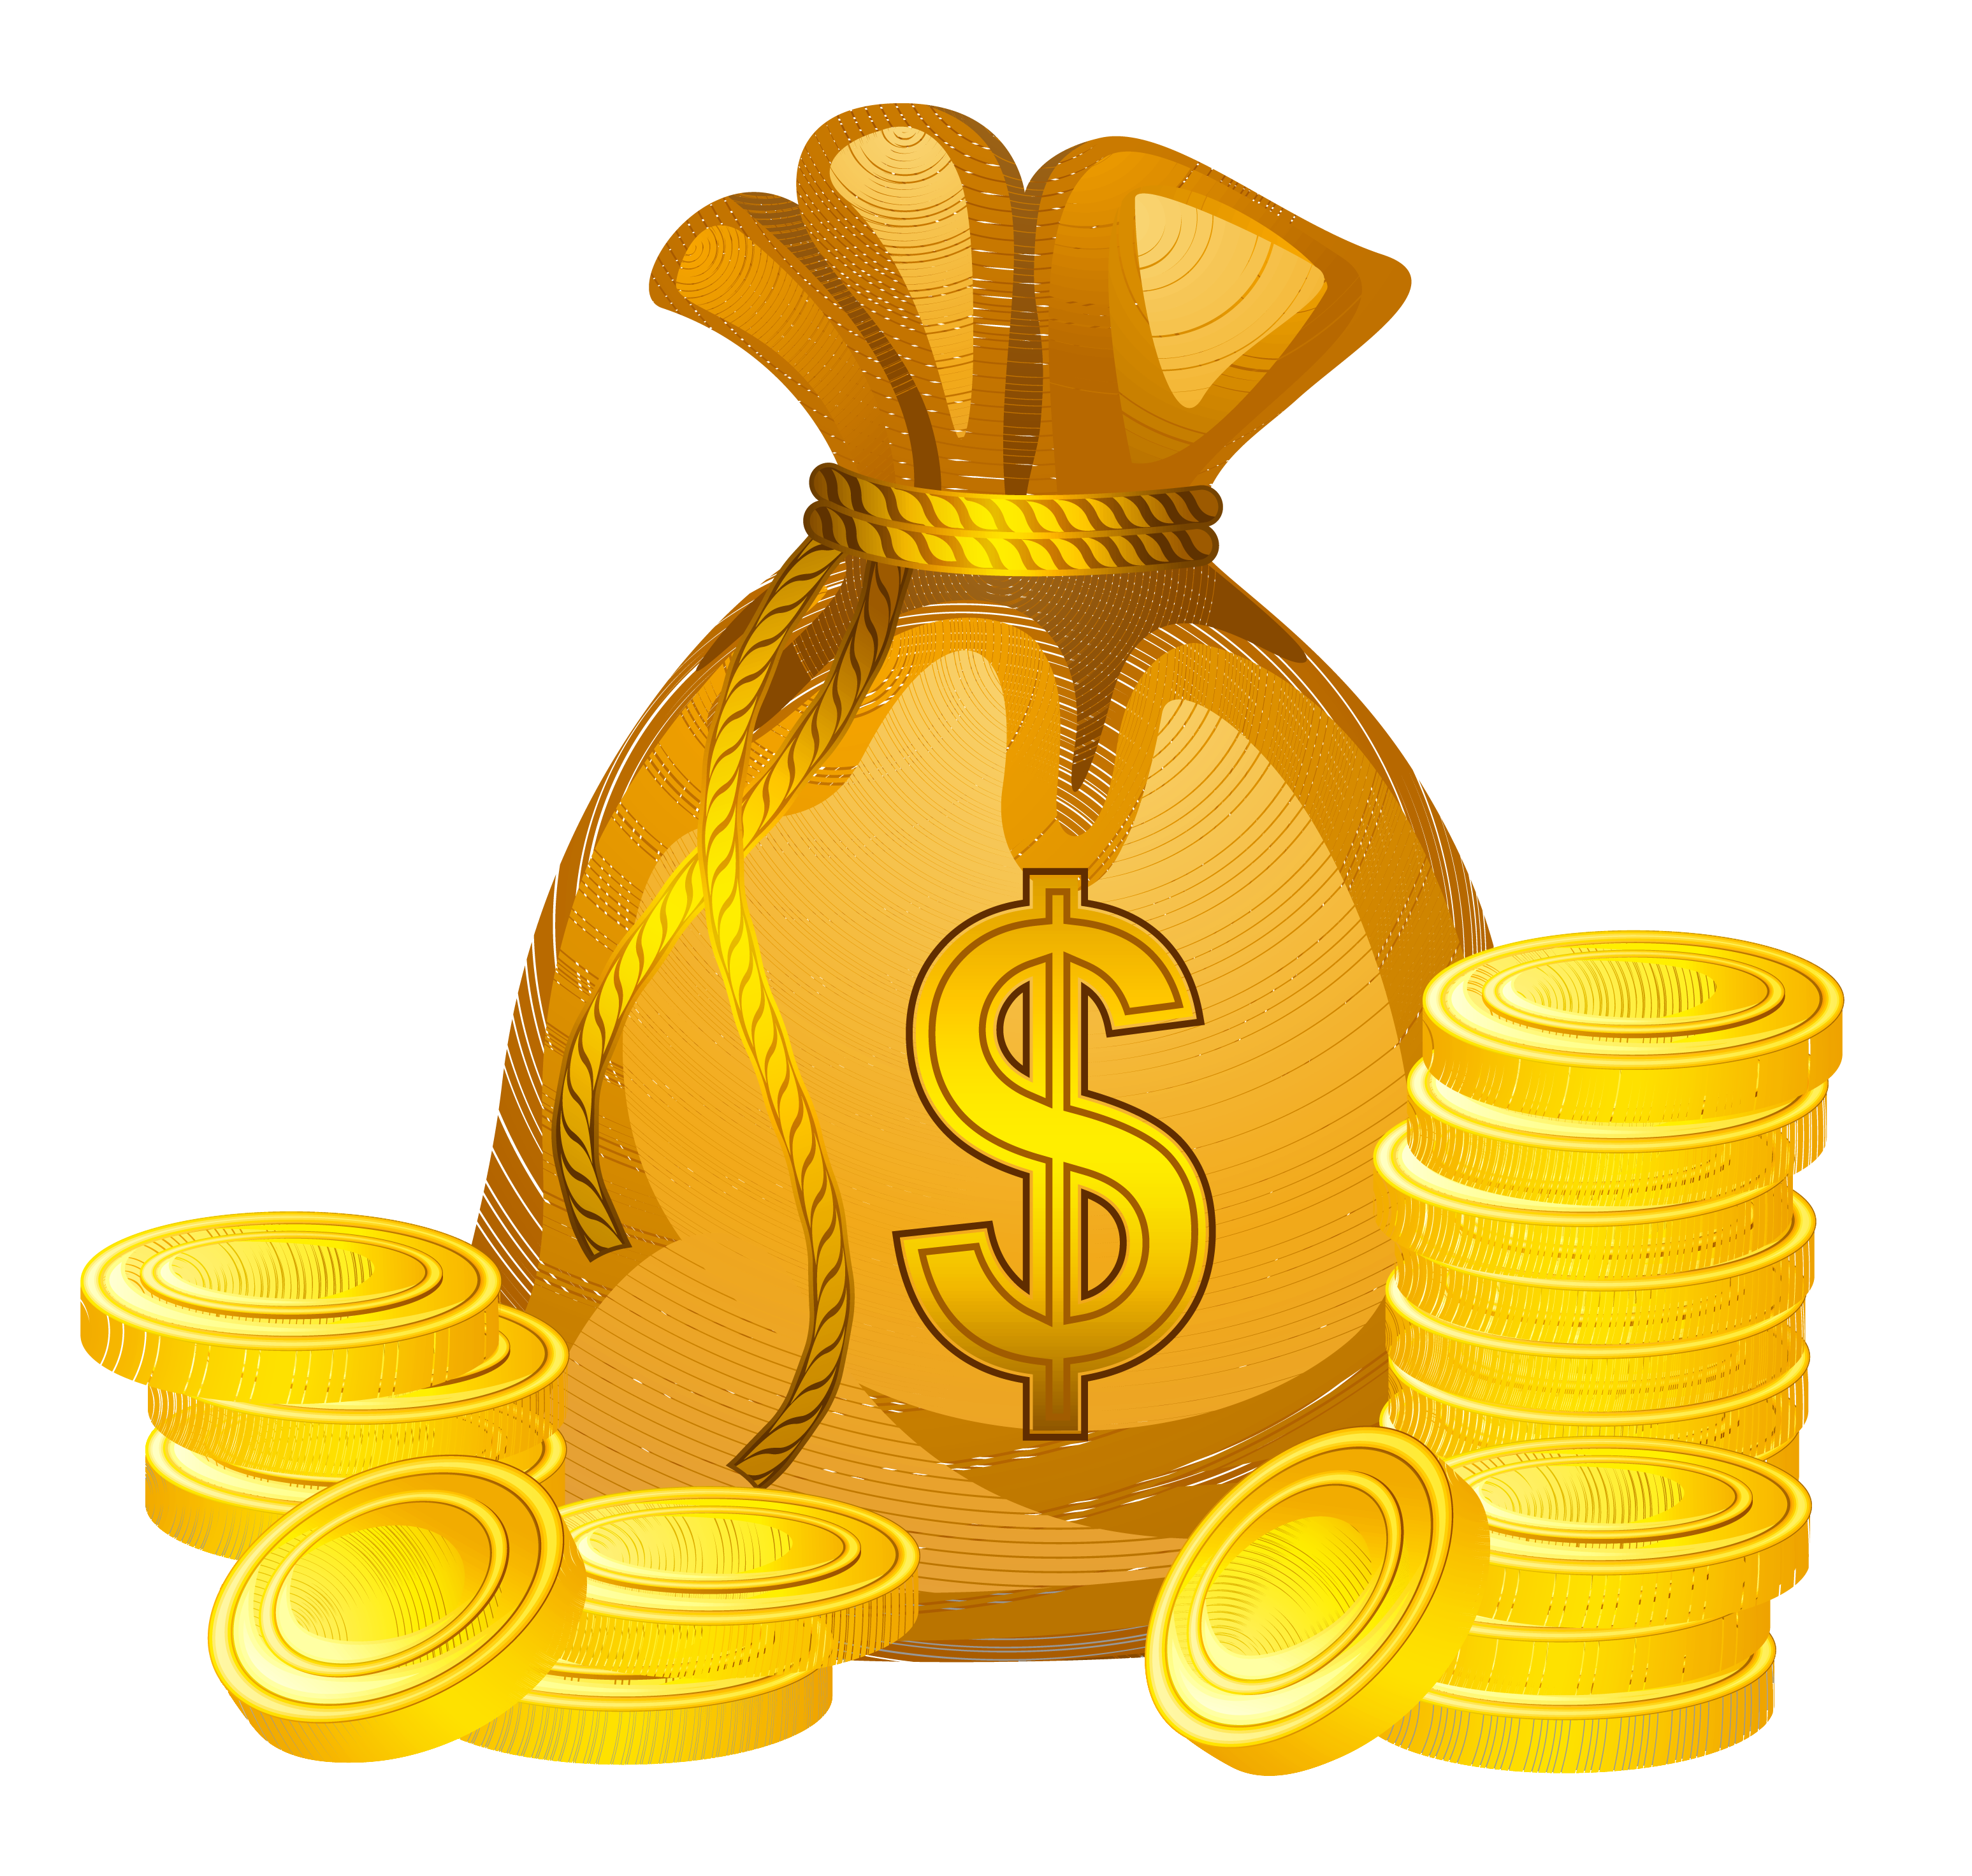 Money Png 22612 Free Icons And Png Backgrounds